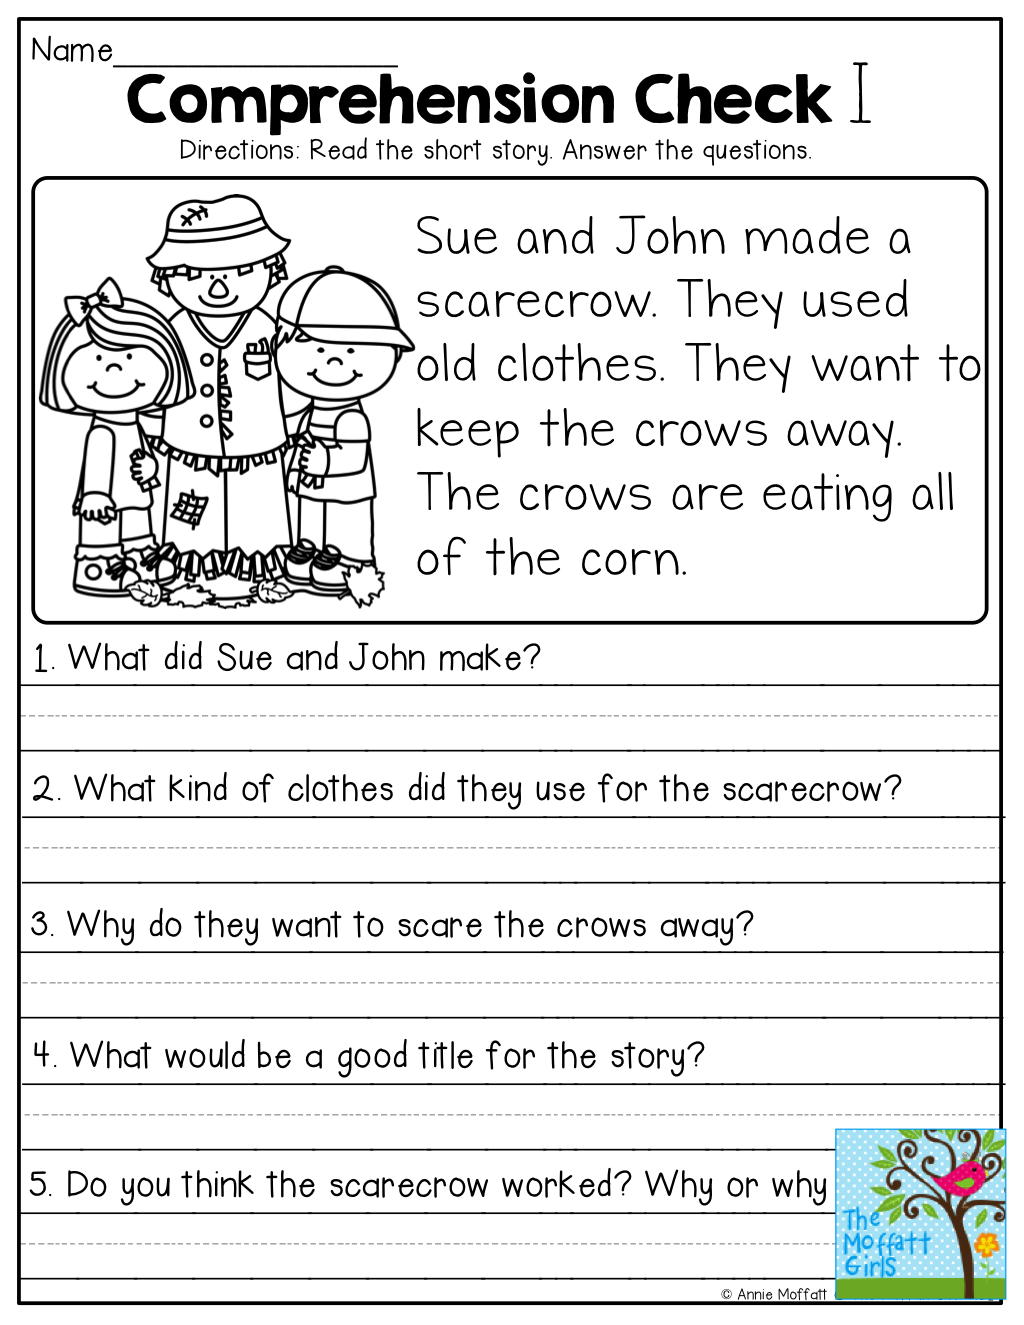 Worksheets Short Reading Comprehension Worksheets short stories with comprehension questions jassiah pinterest questions